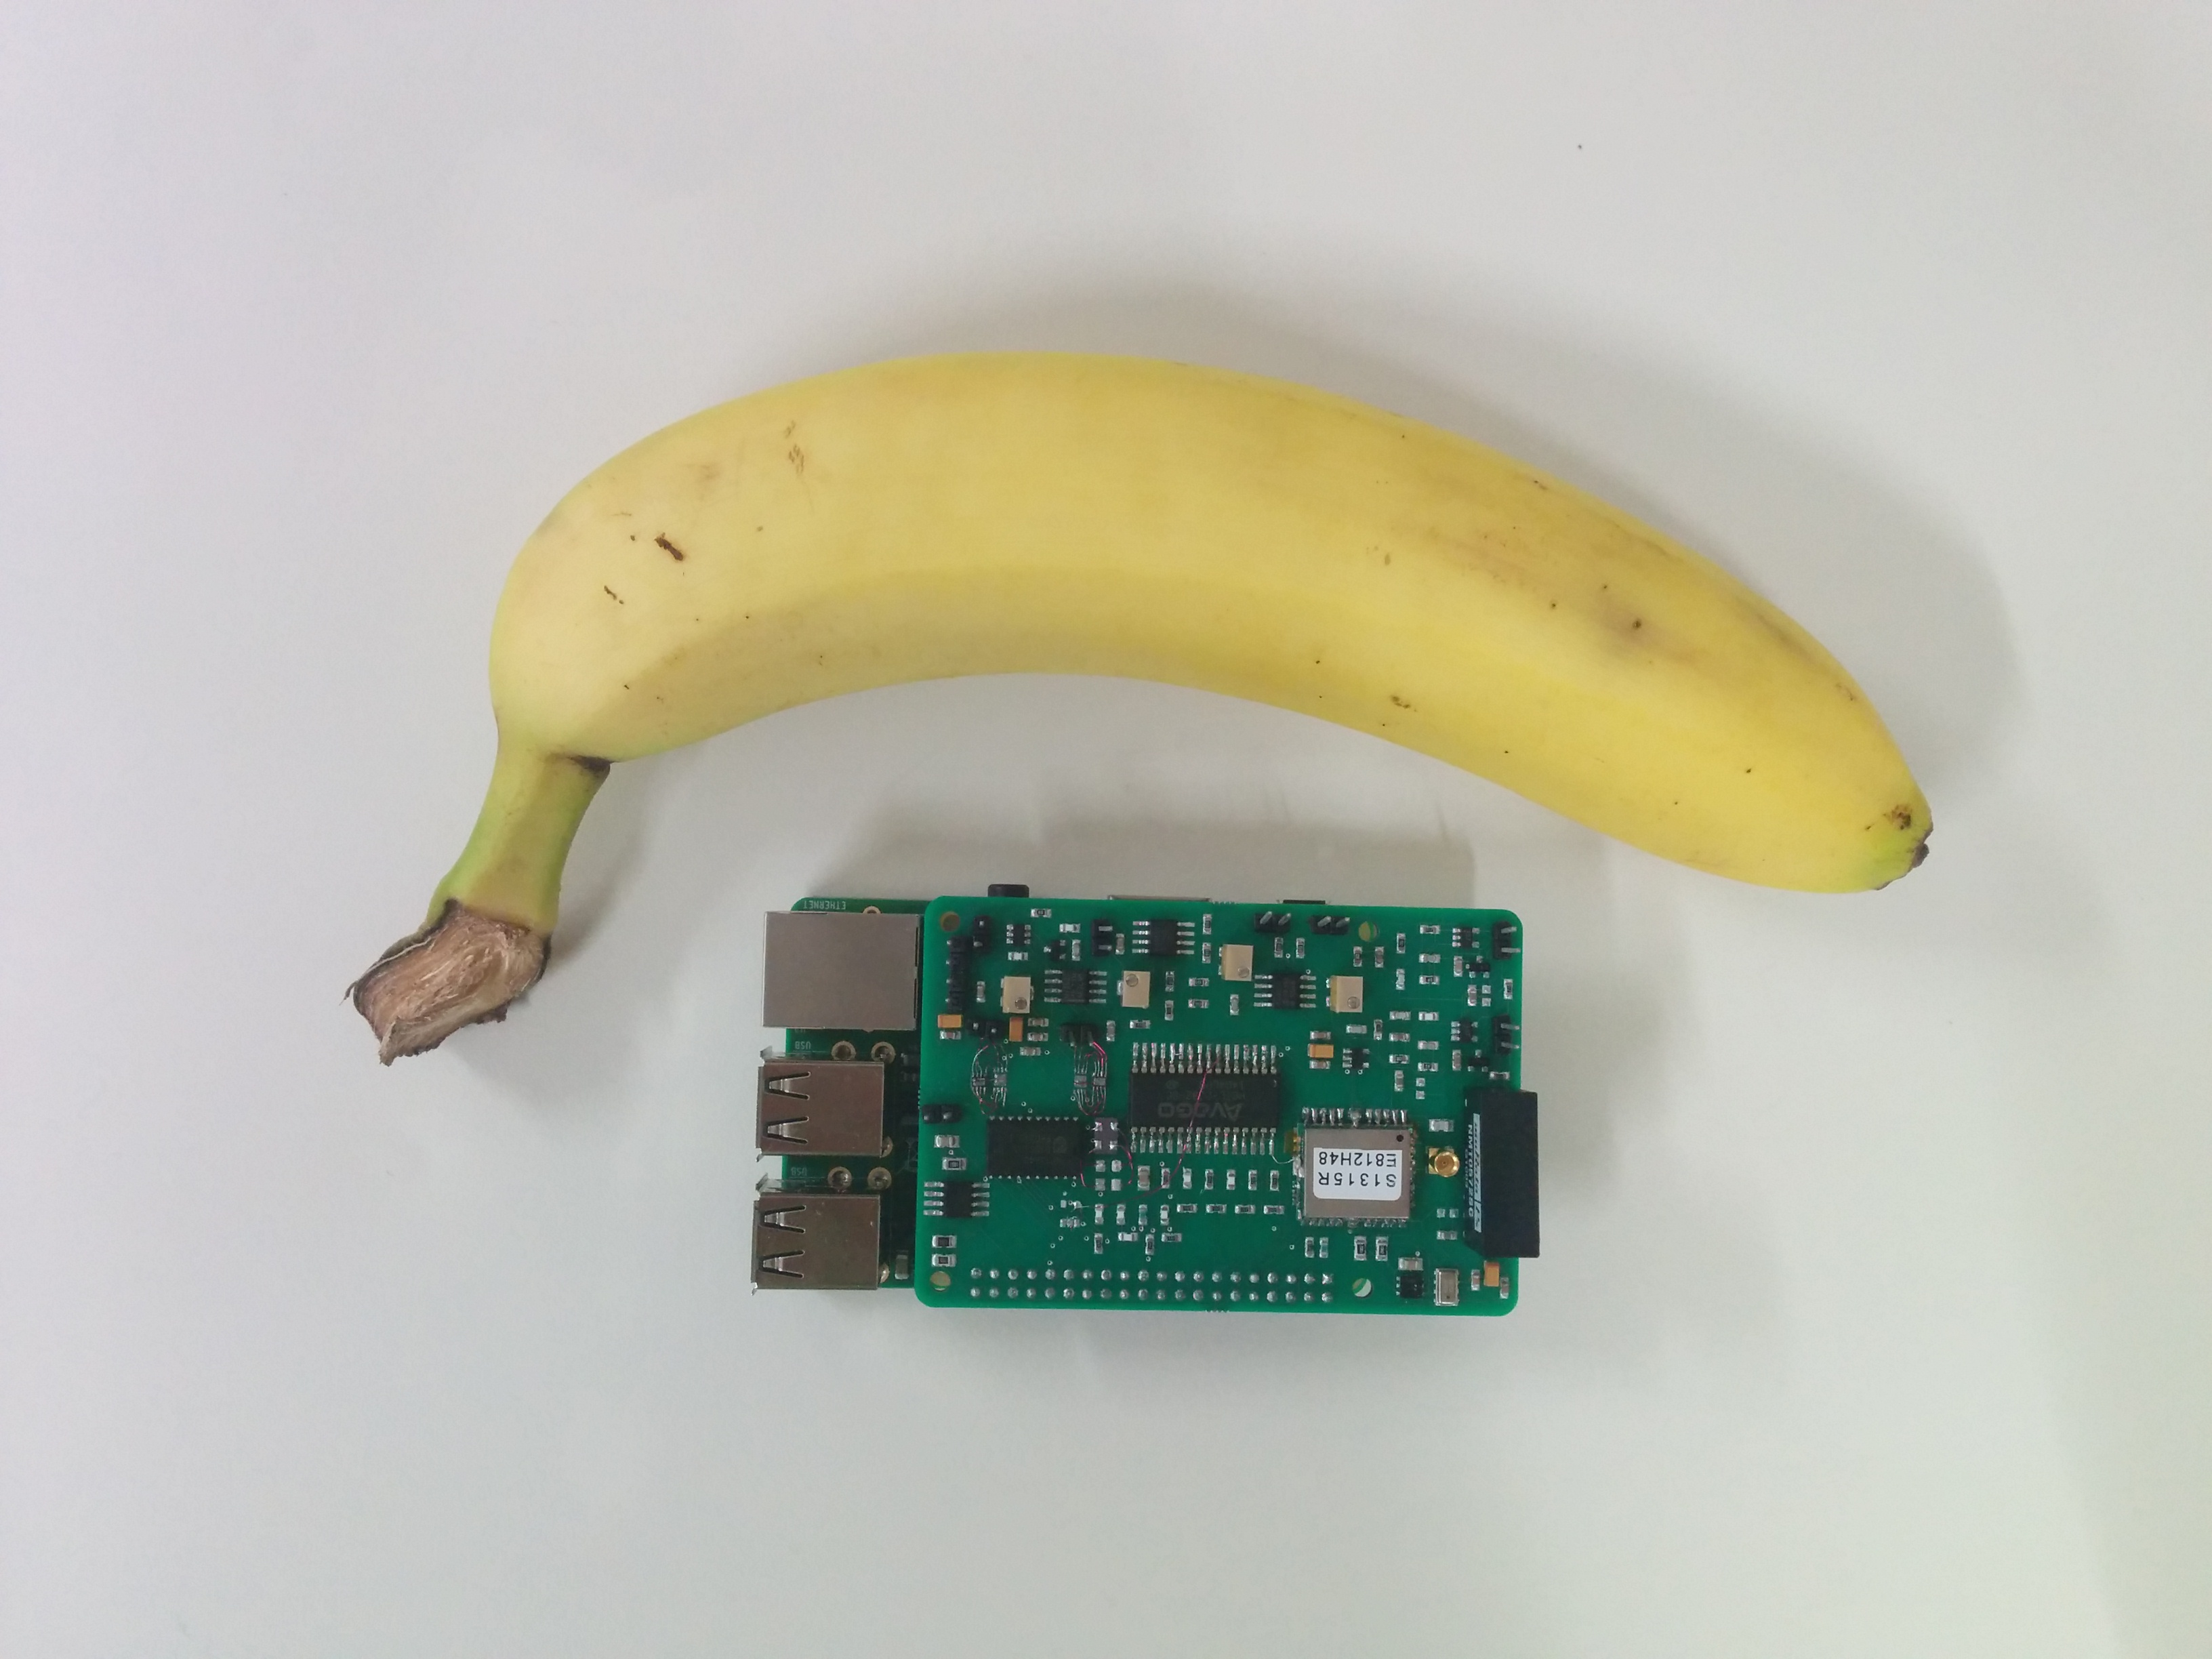 Version 1 with Banana for scale.